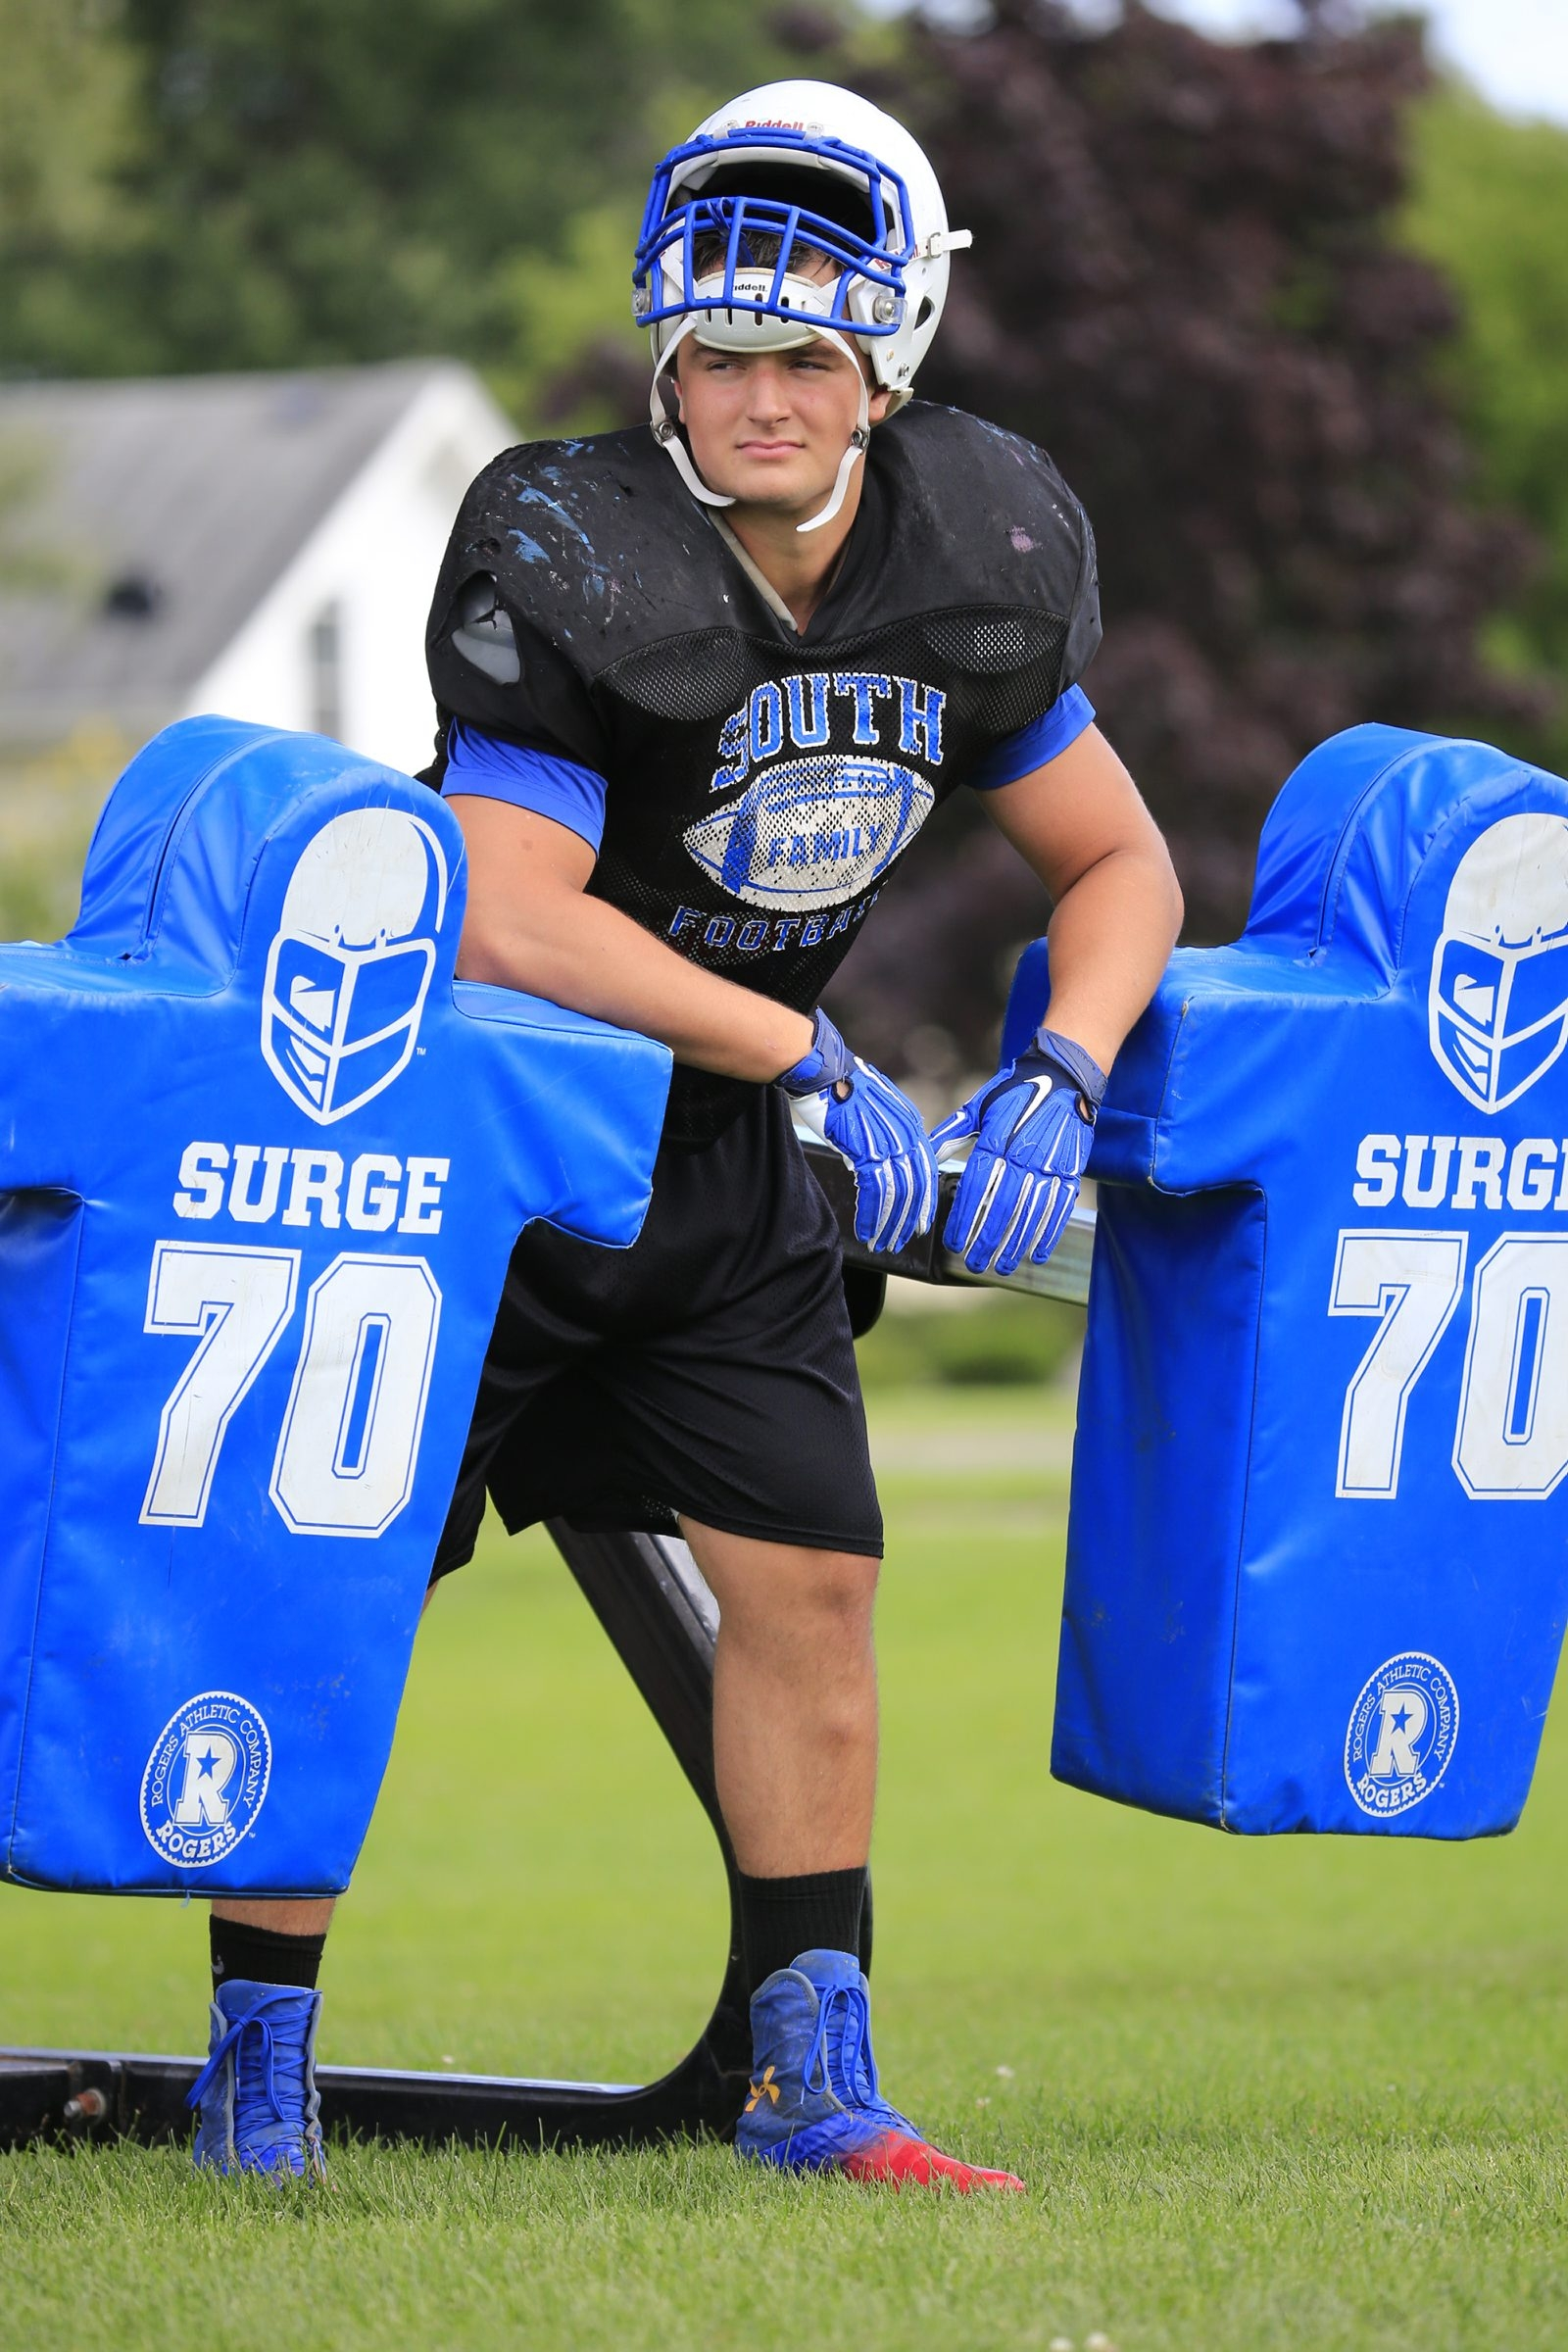 Williamsville South lineman Jake Fuzak, a 275-pounder who can move, has verbally committed to play at UB.